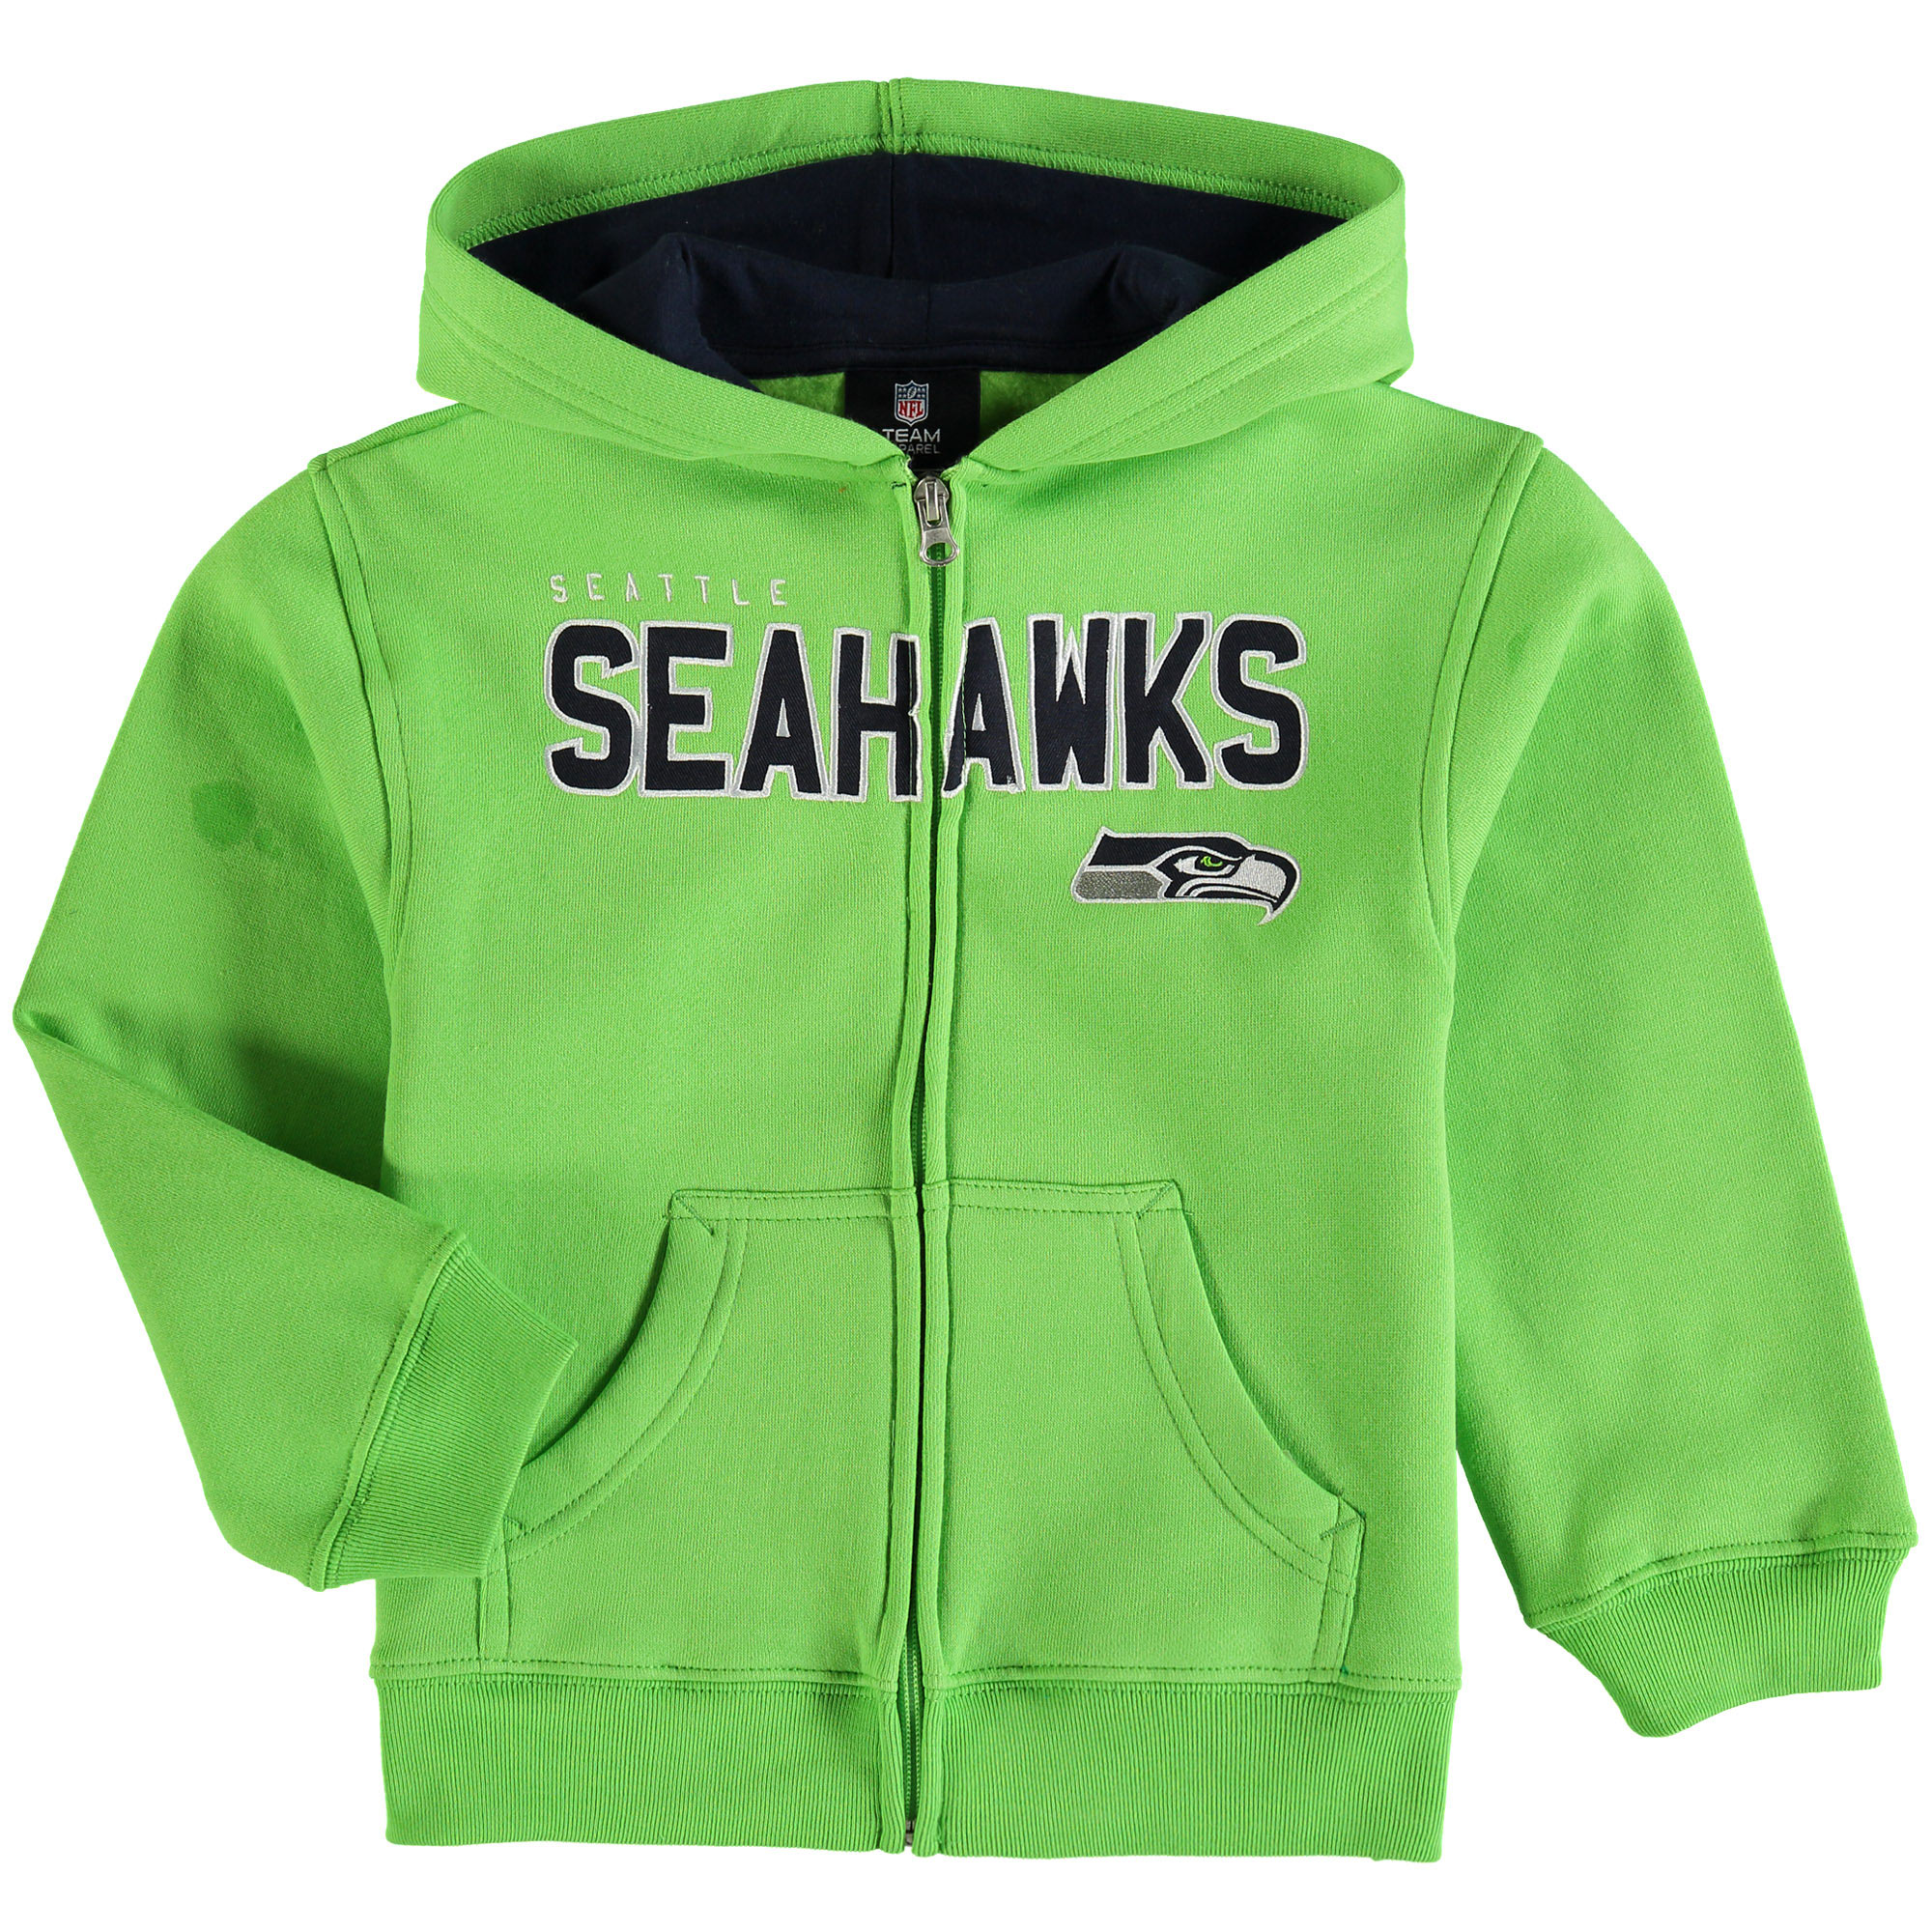 Seattle Seahawks Preschool Fan Gear Stated Full-Zip Hoodie - Neon Green - 7